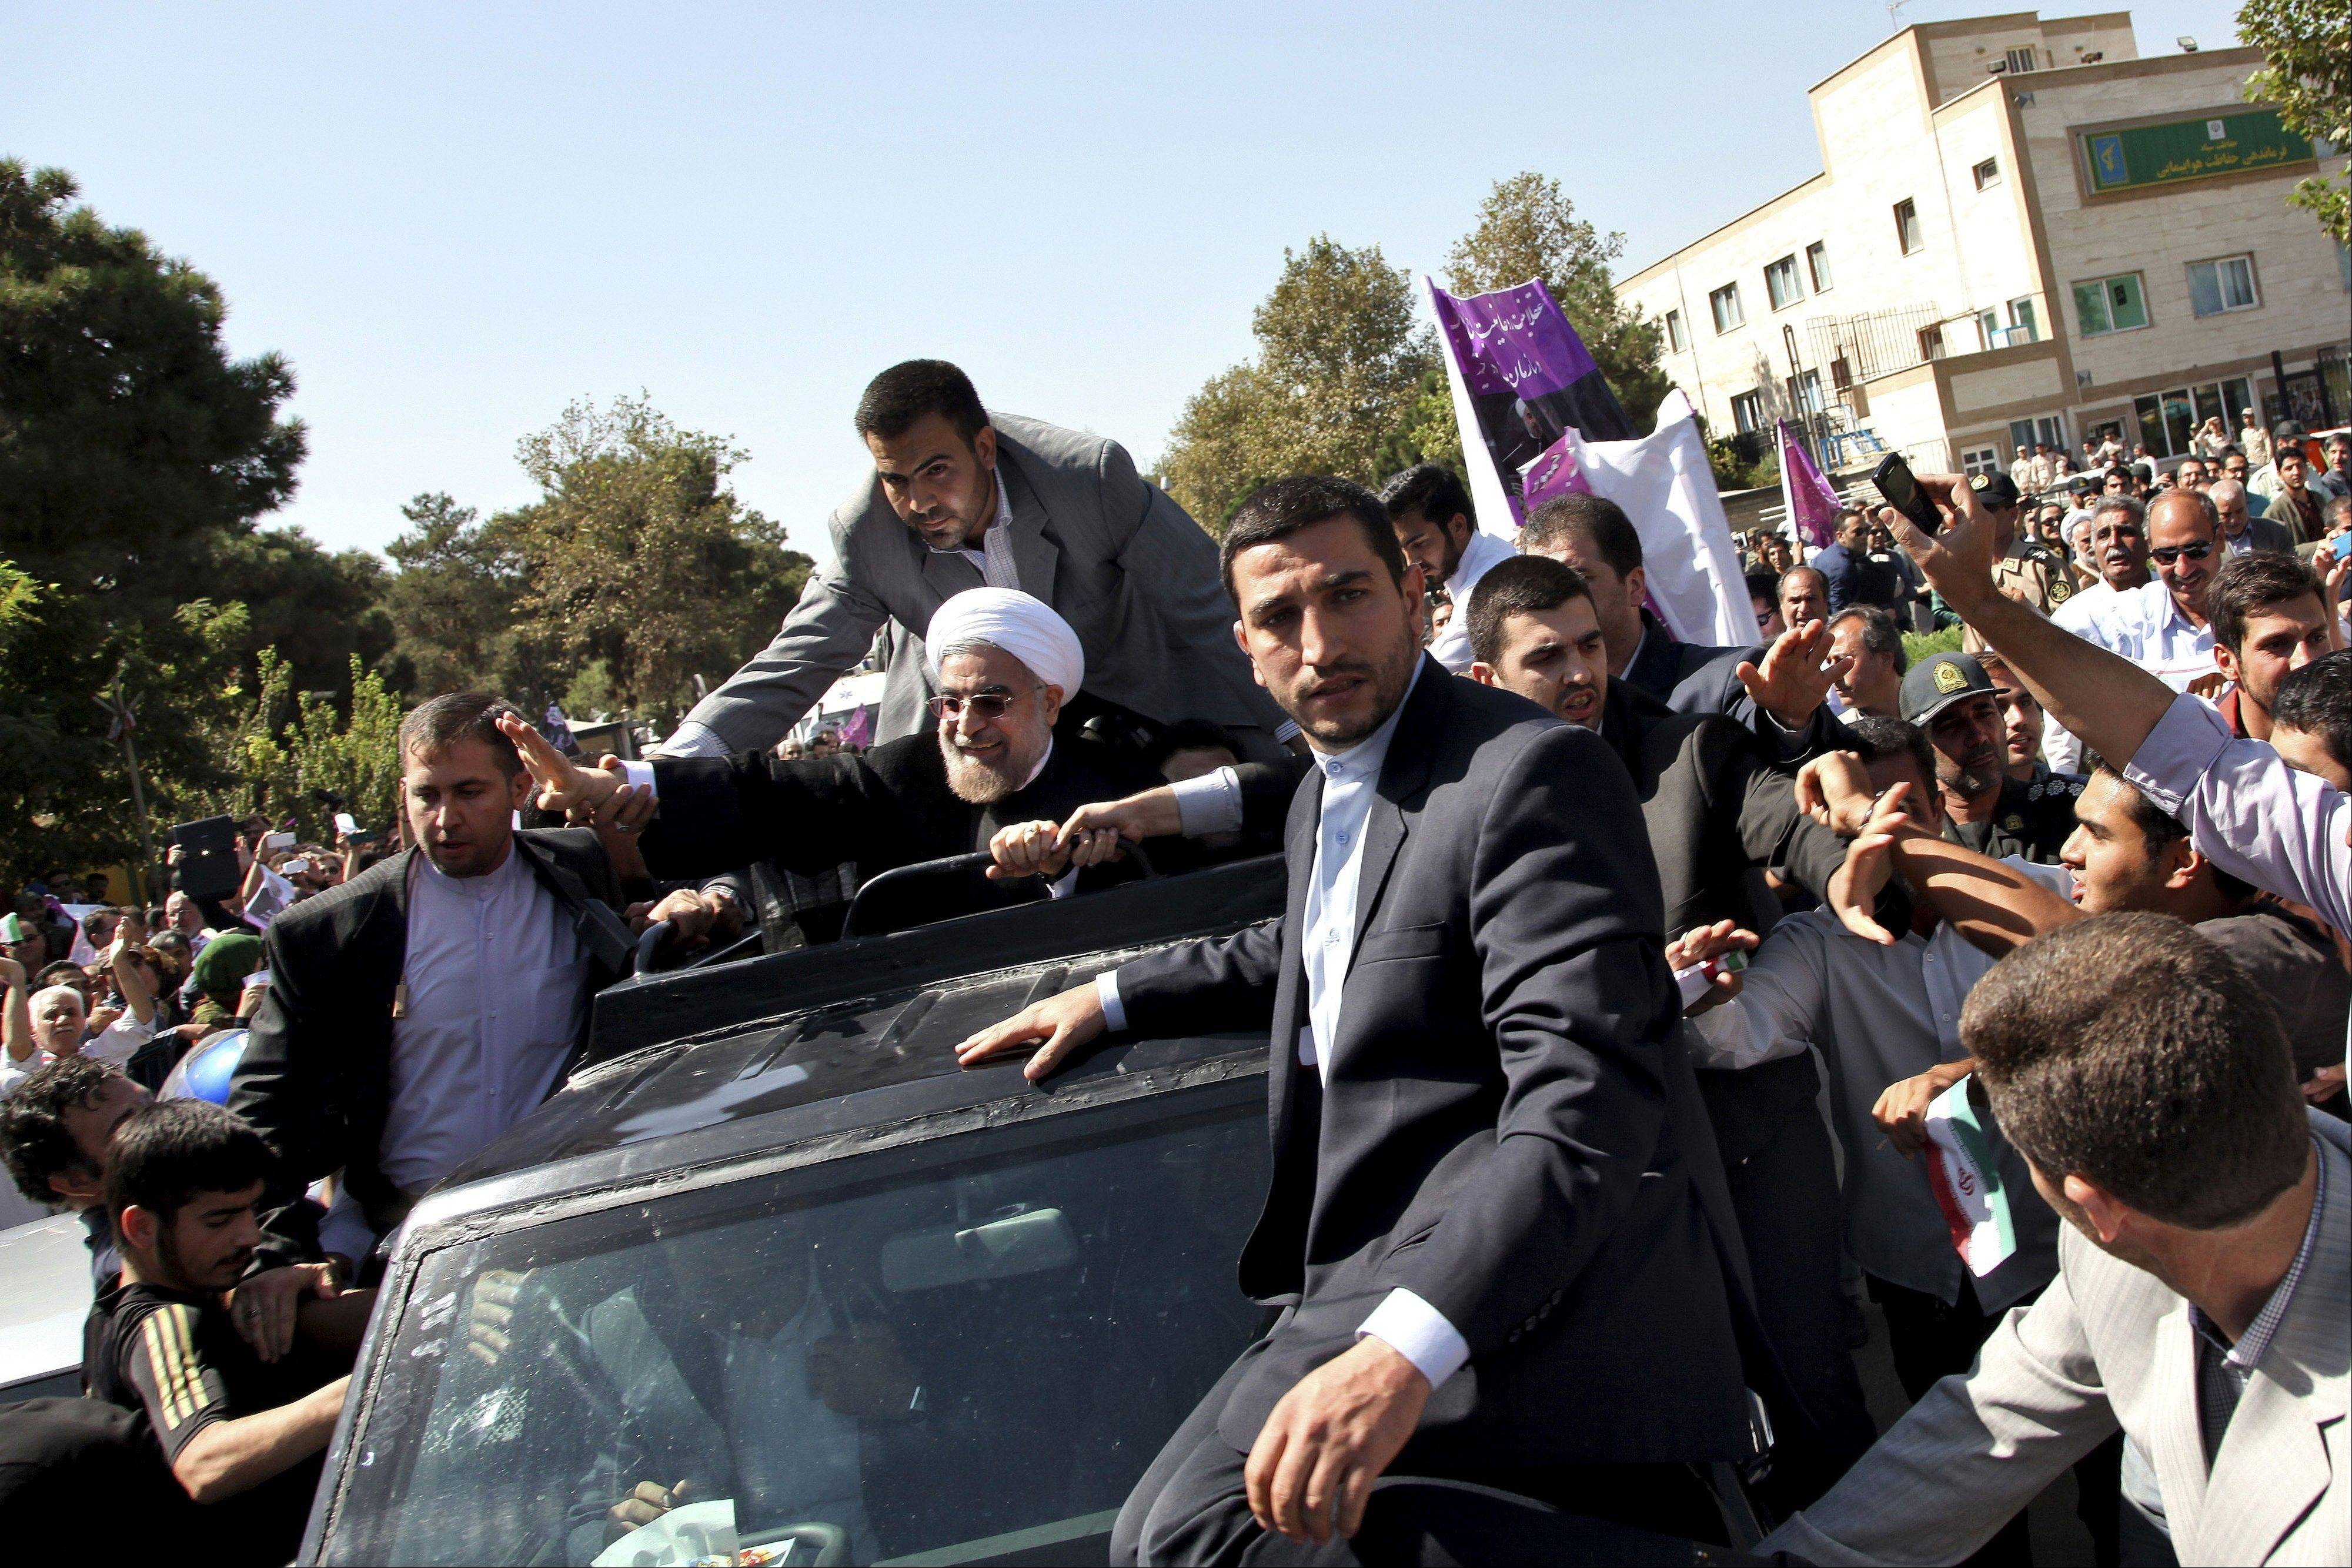 Iranian President Hassan Rouhani, center, waves to supporters upon his arrival from the US near the Mehrabad airport in Tehran, Iran, Saturday, Sept. 28. Iranians from across the political spectrum hailed Saturday the historic phone conversation between President Barack Obama and Rouhani, reflecting wide support for an initiative that has the backing of both reformists and the country's conservative clerical leadership.